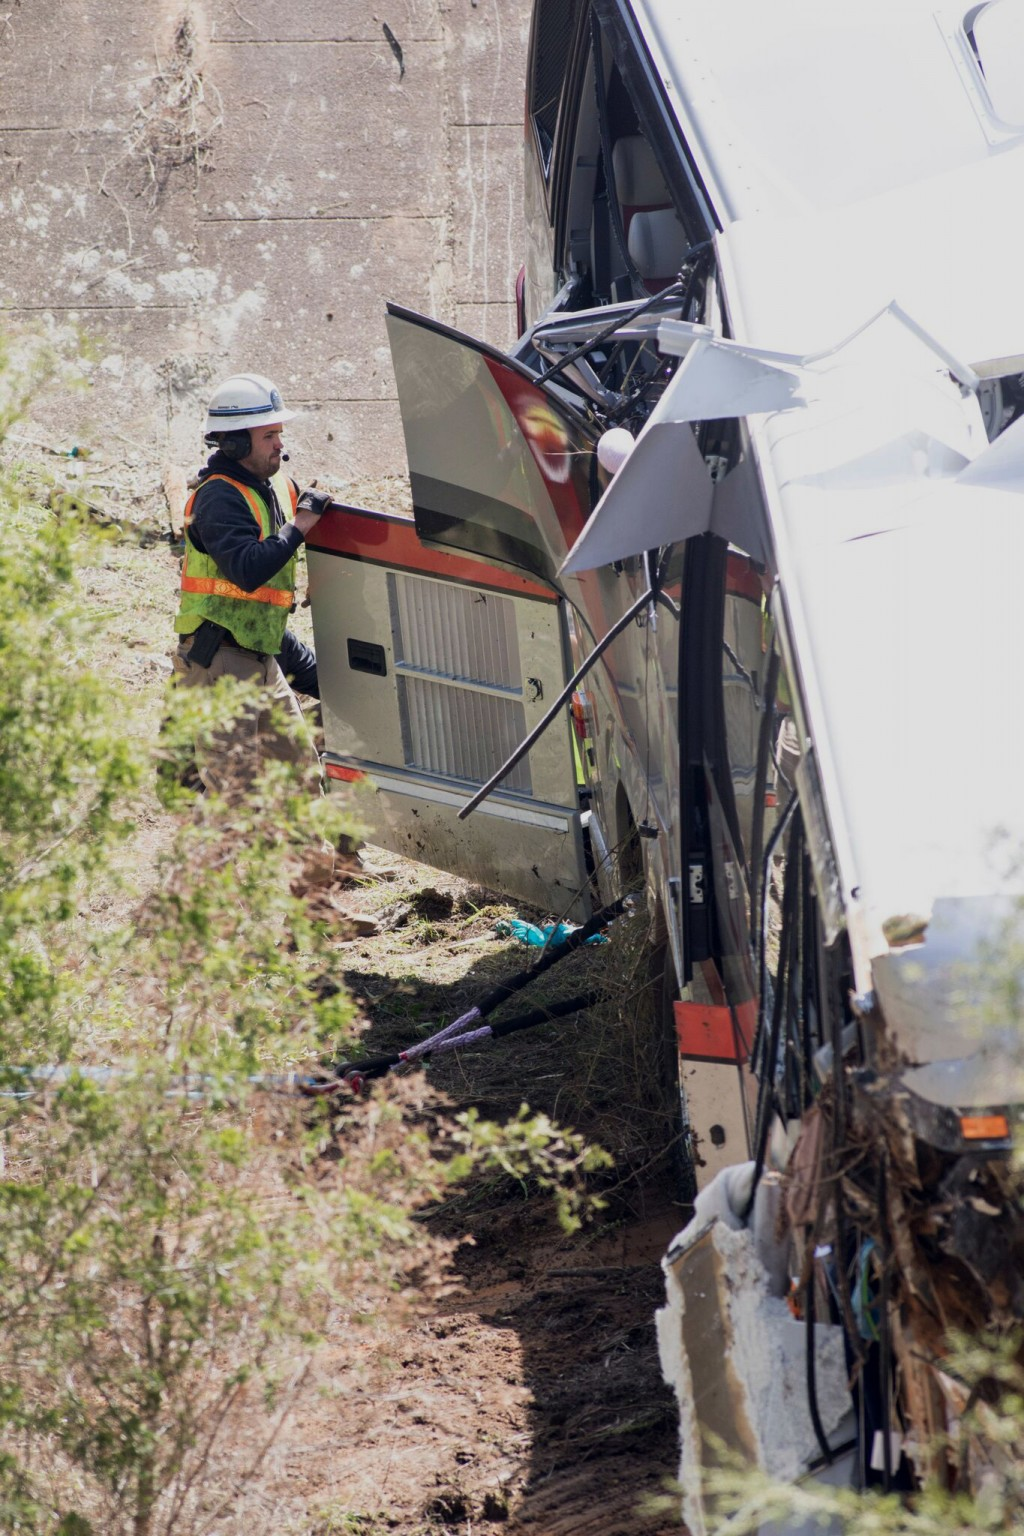 Emergency personnel looks into a bus that crashed into a ravine in Loxley, Ala., Tuesday, March 13, 2018. The bus carrying dozens of students and six